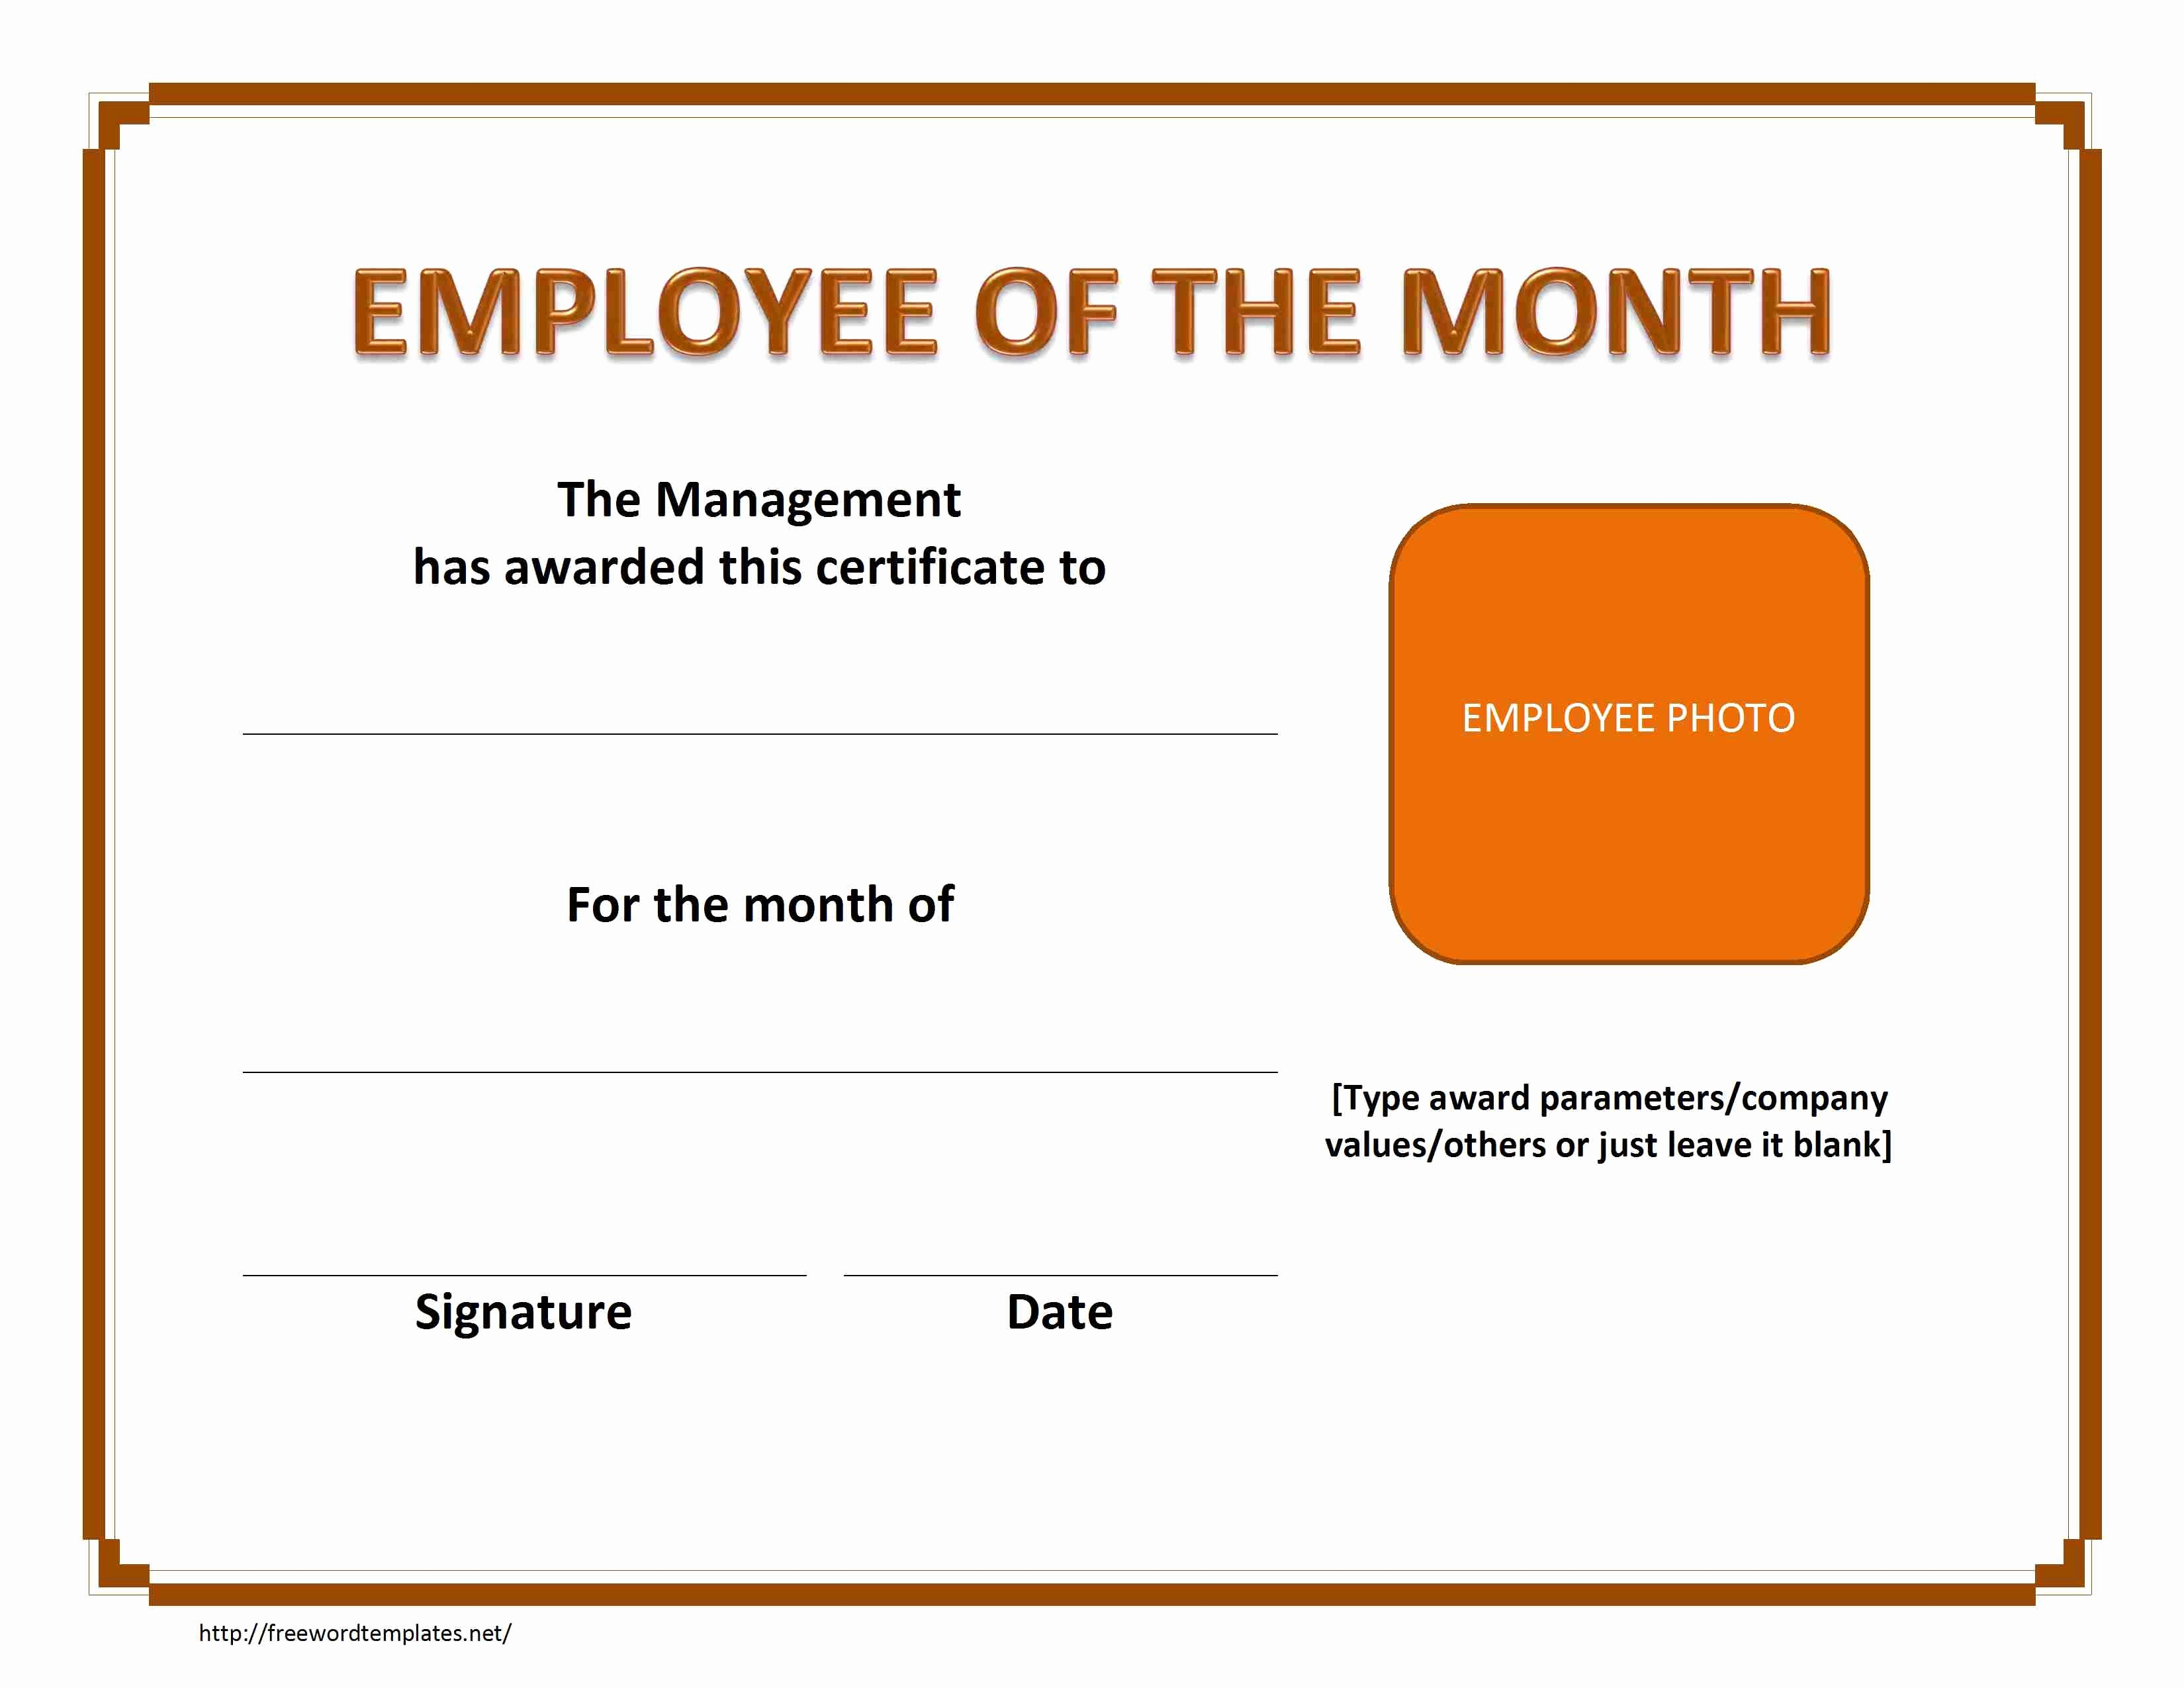 Employee Award Certificate Templates Free Awesome Employee Of the Month Certificate